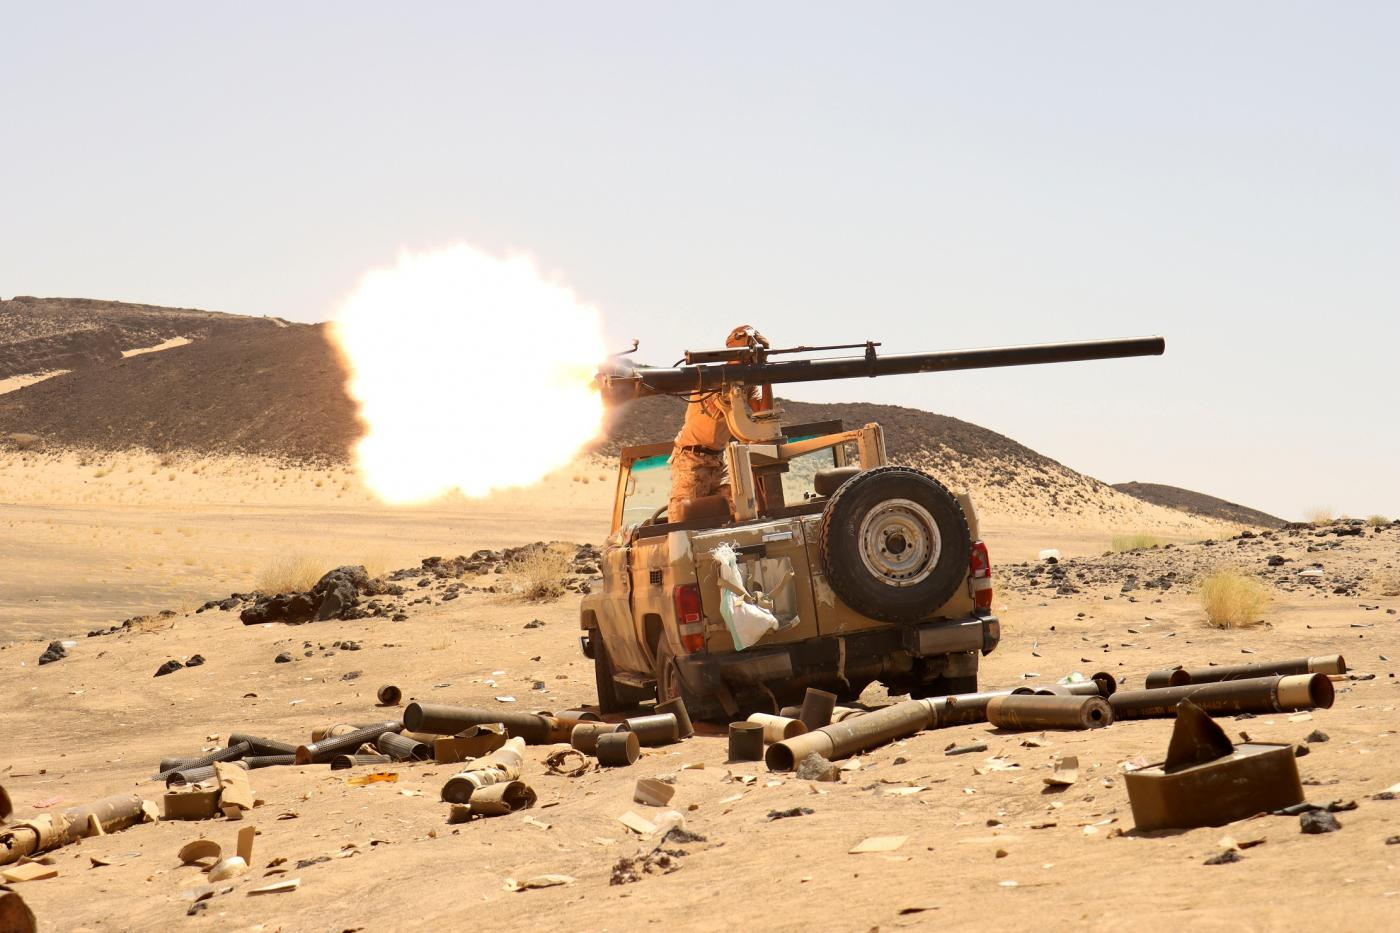 A Yemeni government fighter at a frontline position during fighting against Houthi rebels in Marib, 9 March (Reuters)